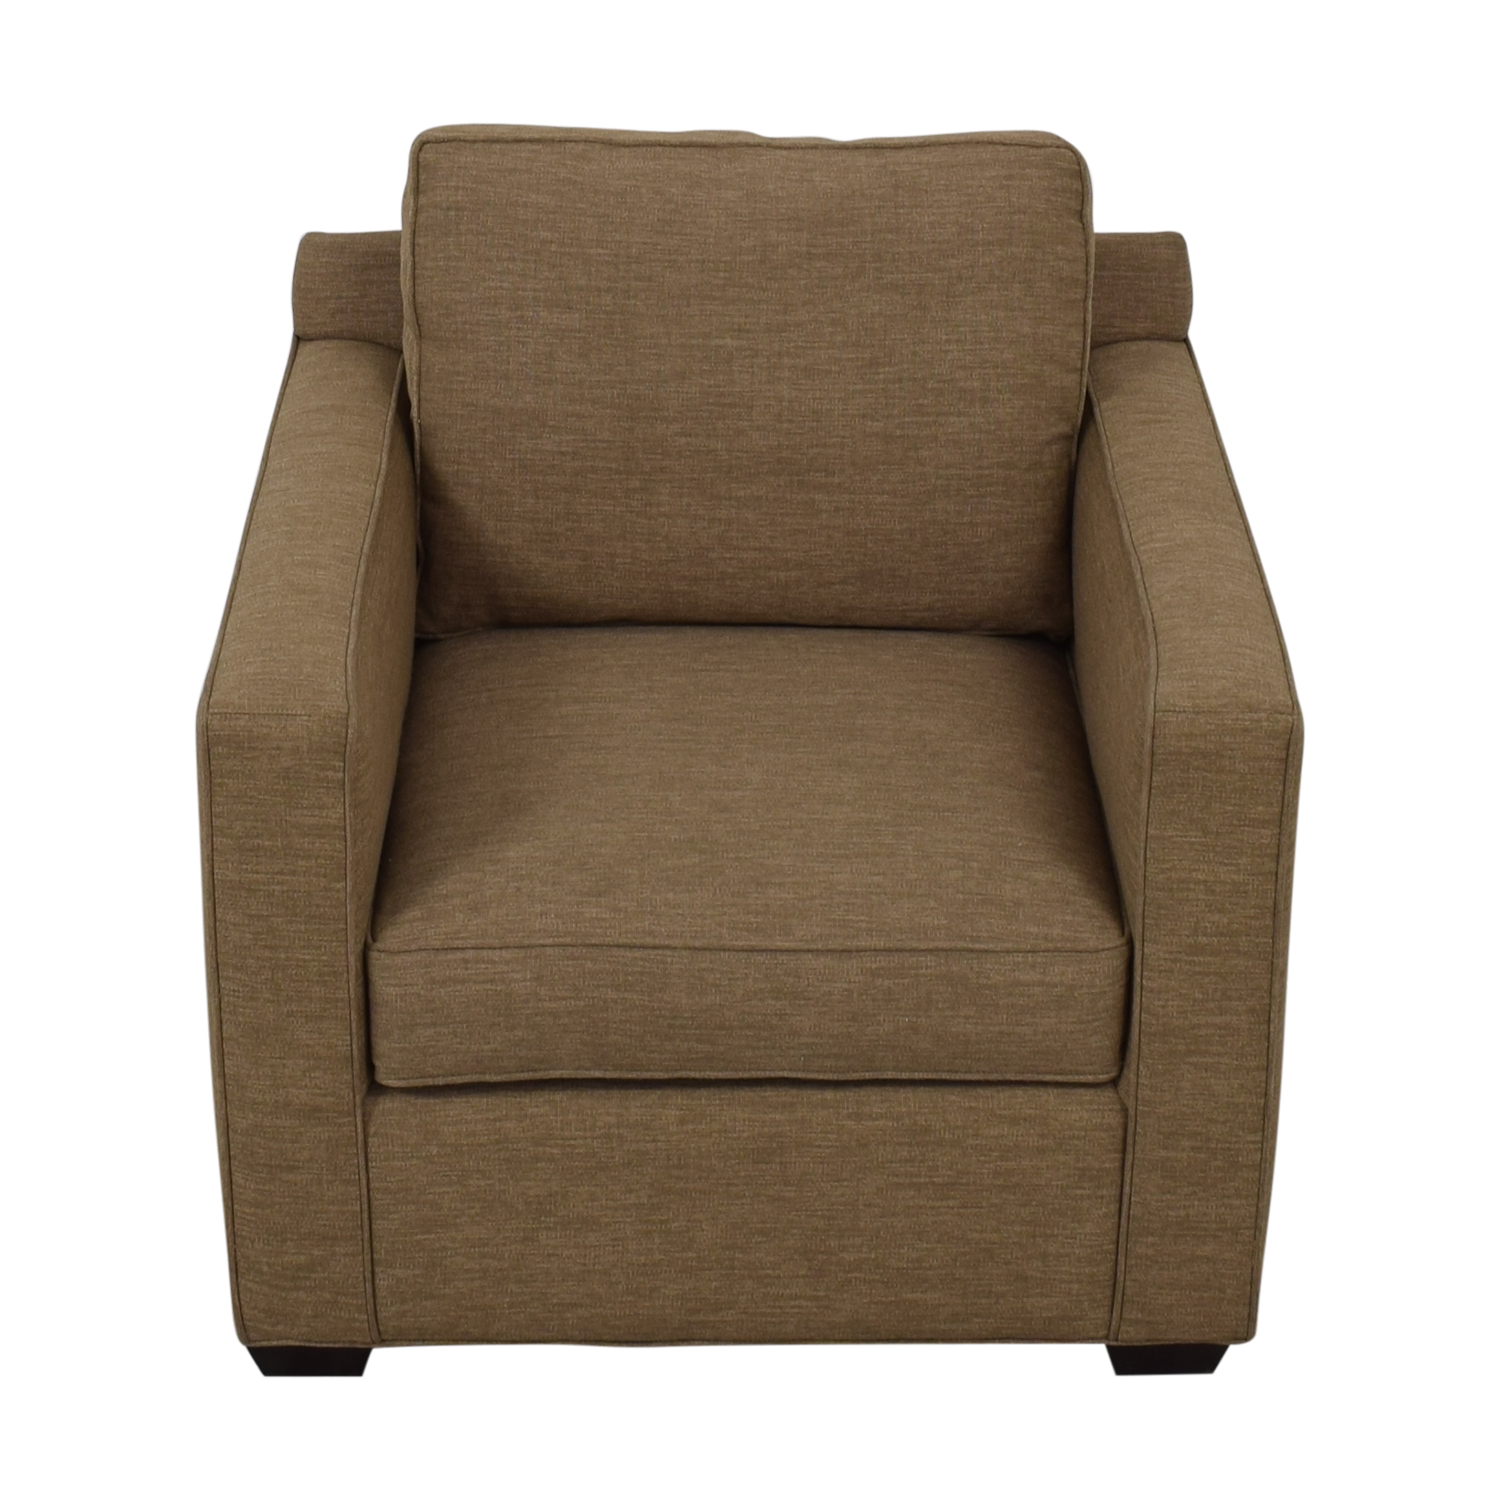 Crate & Barrel Crate & Barrel Davis Armchair ma